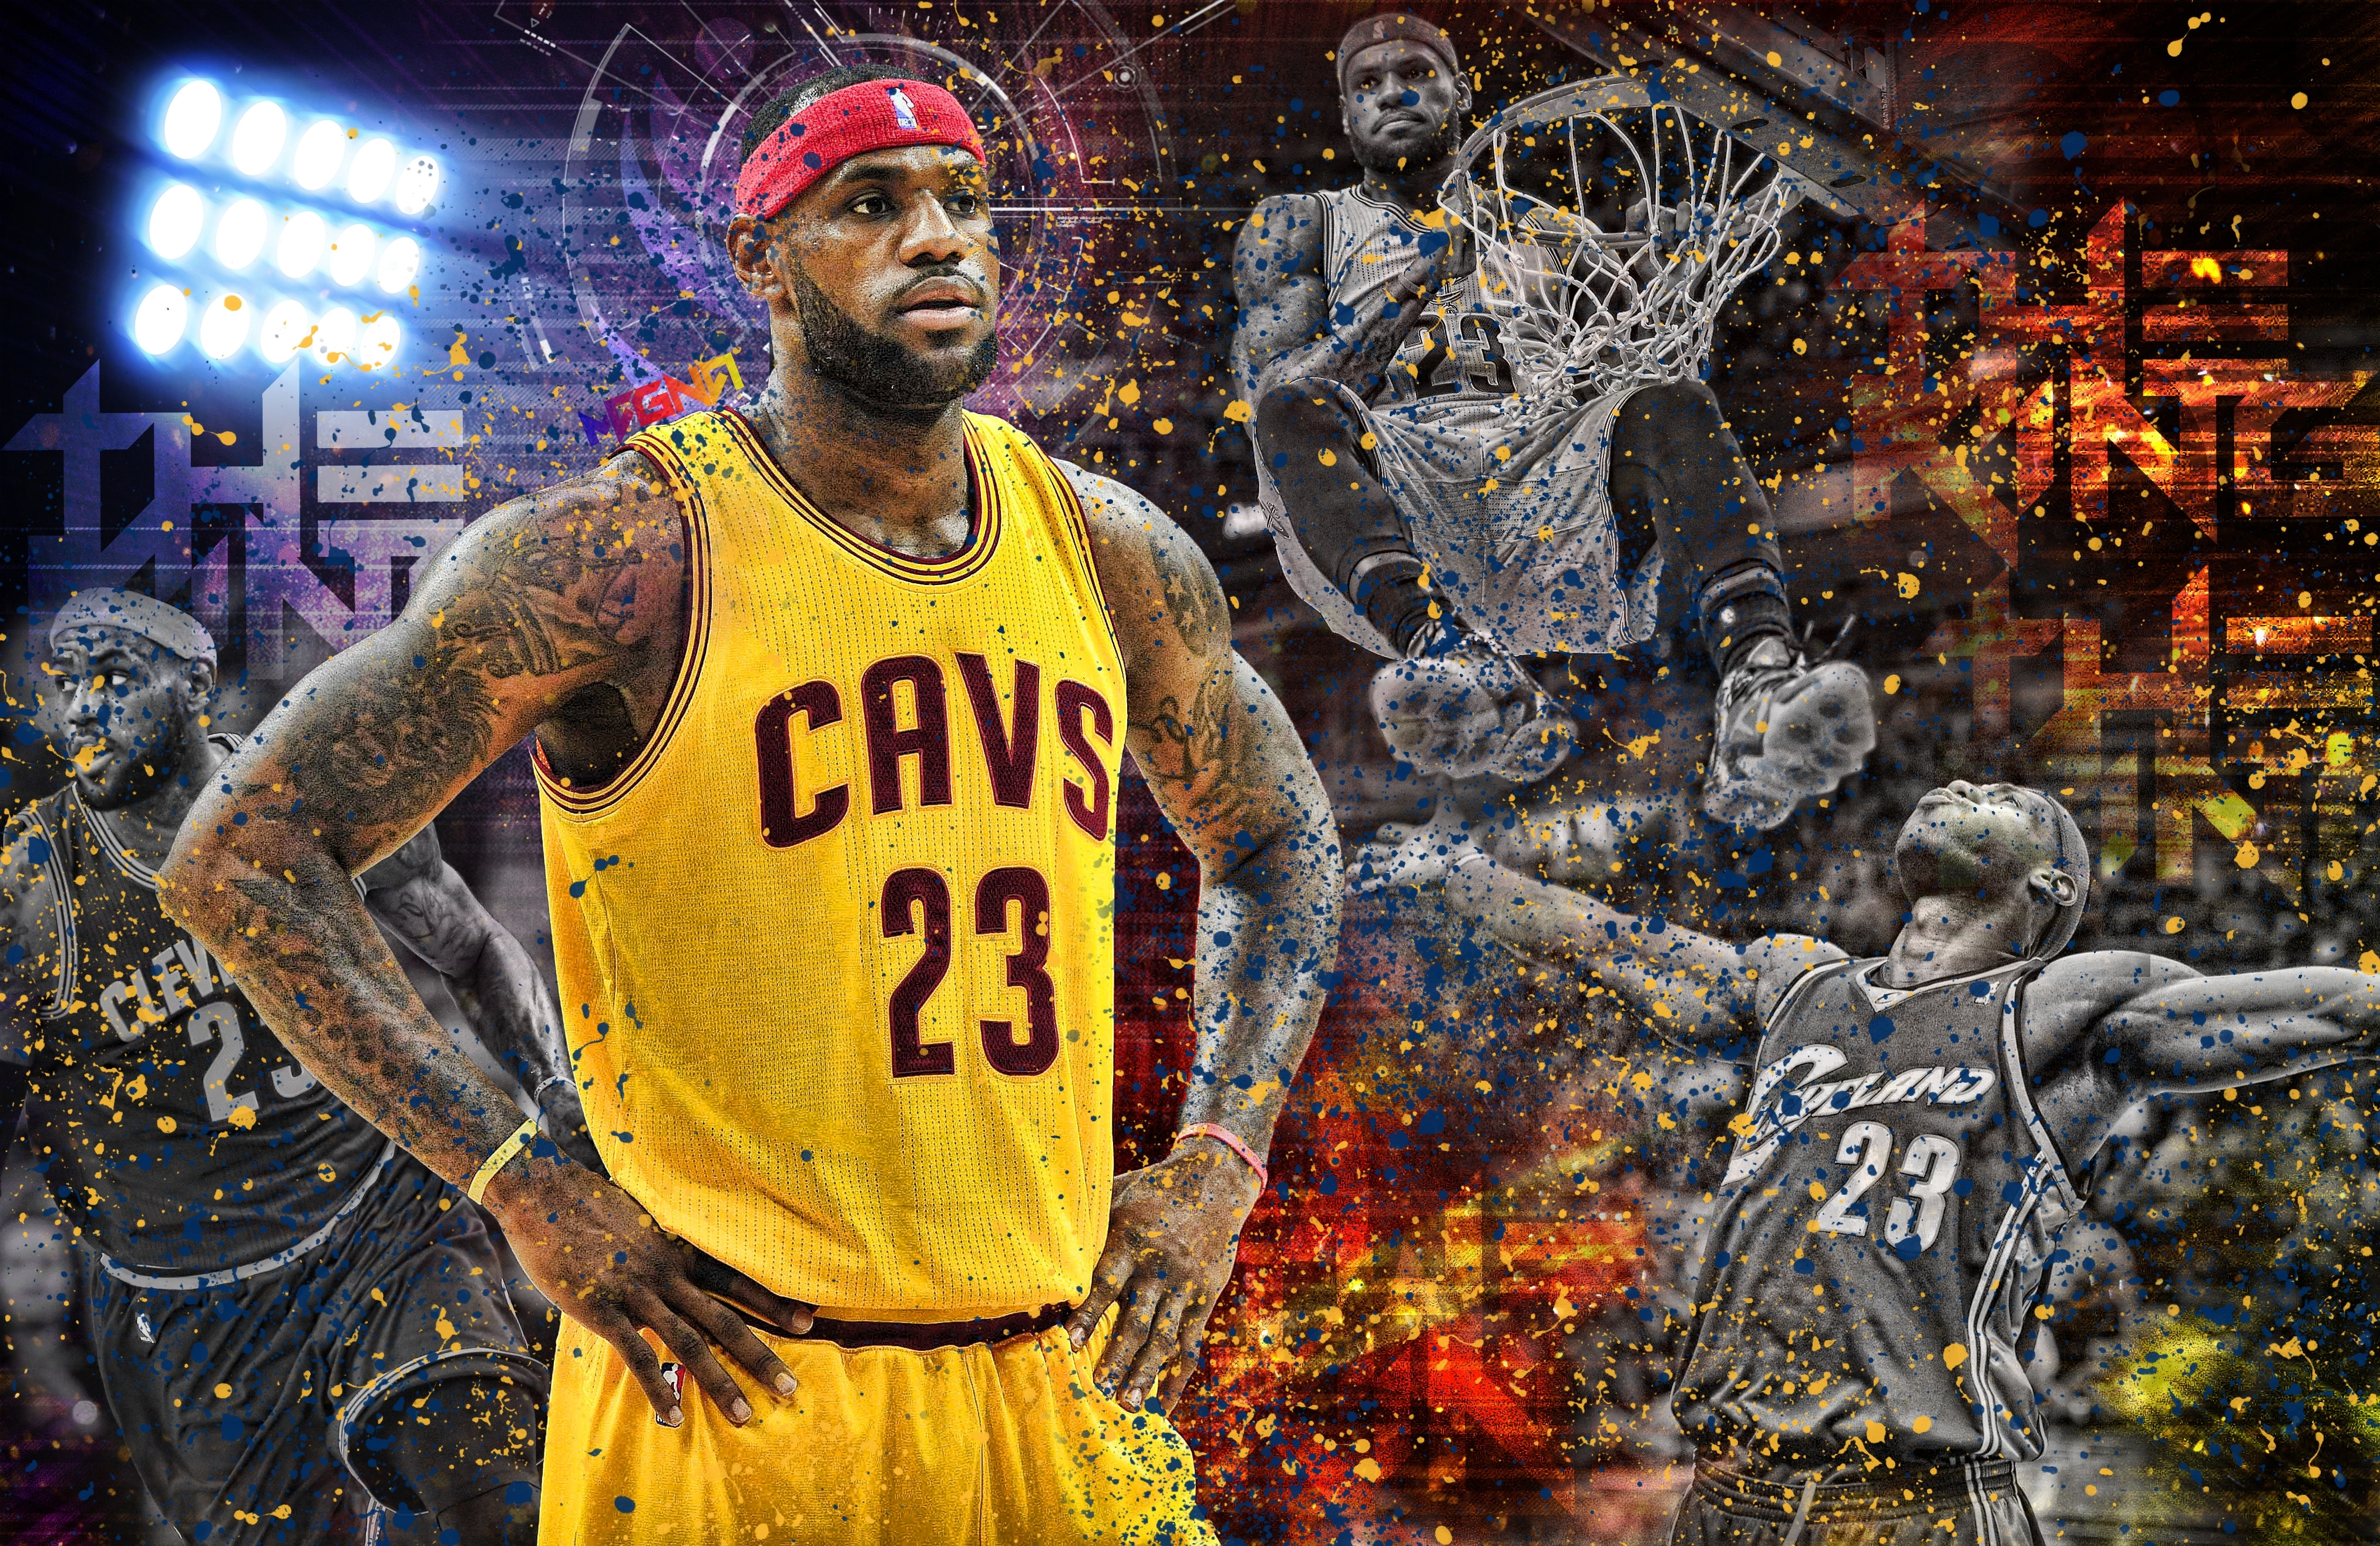 lebron james 4k ultra hd wallpaper and background image | 4052x2632